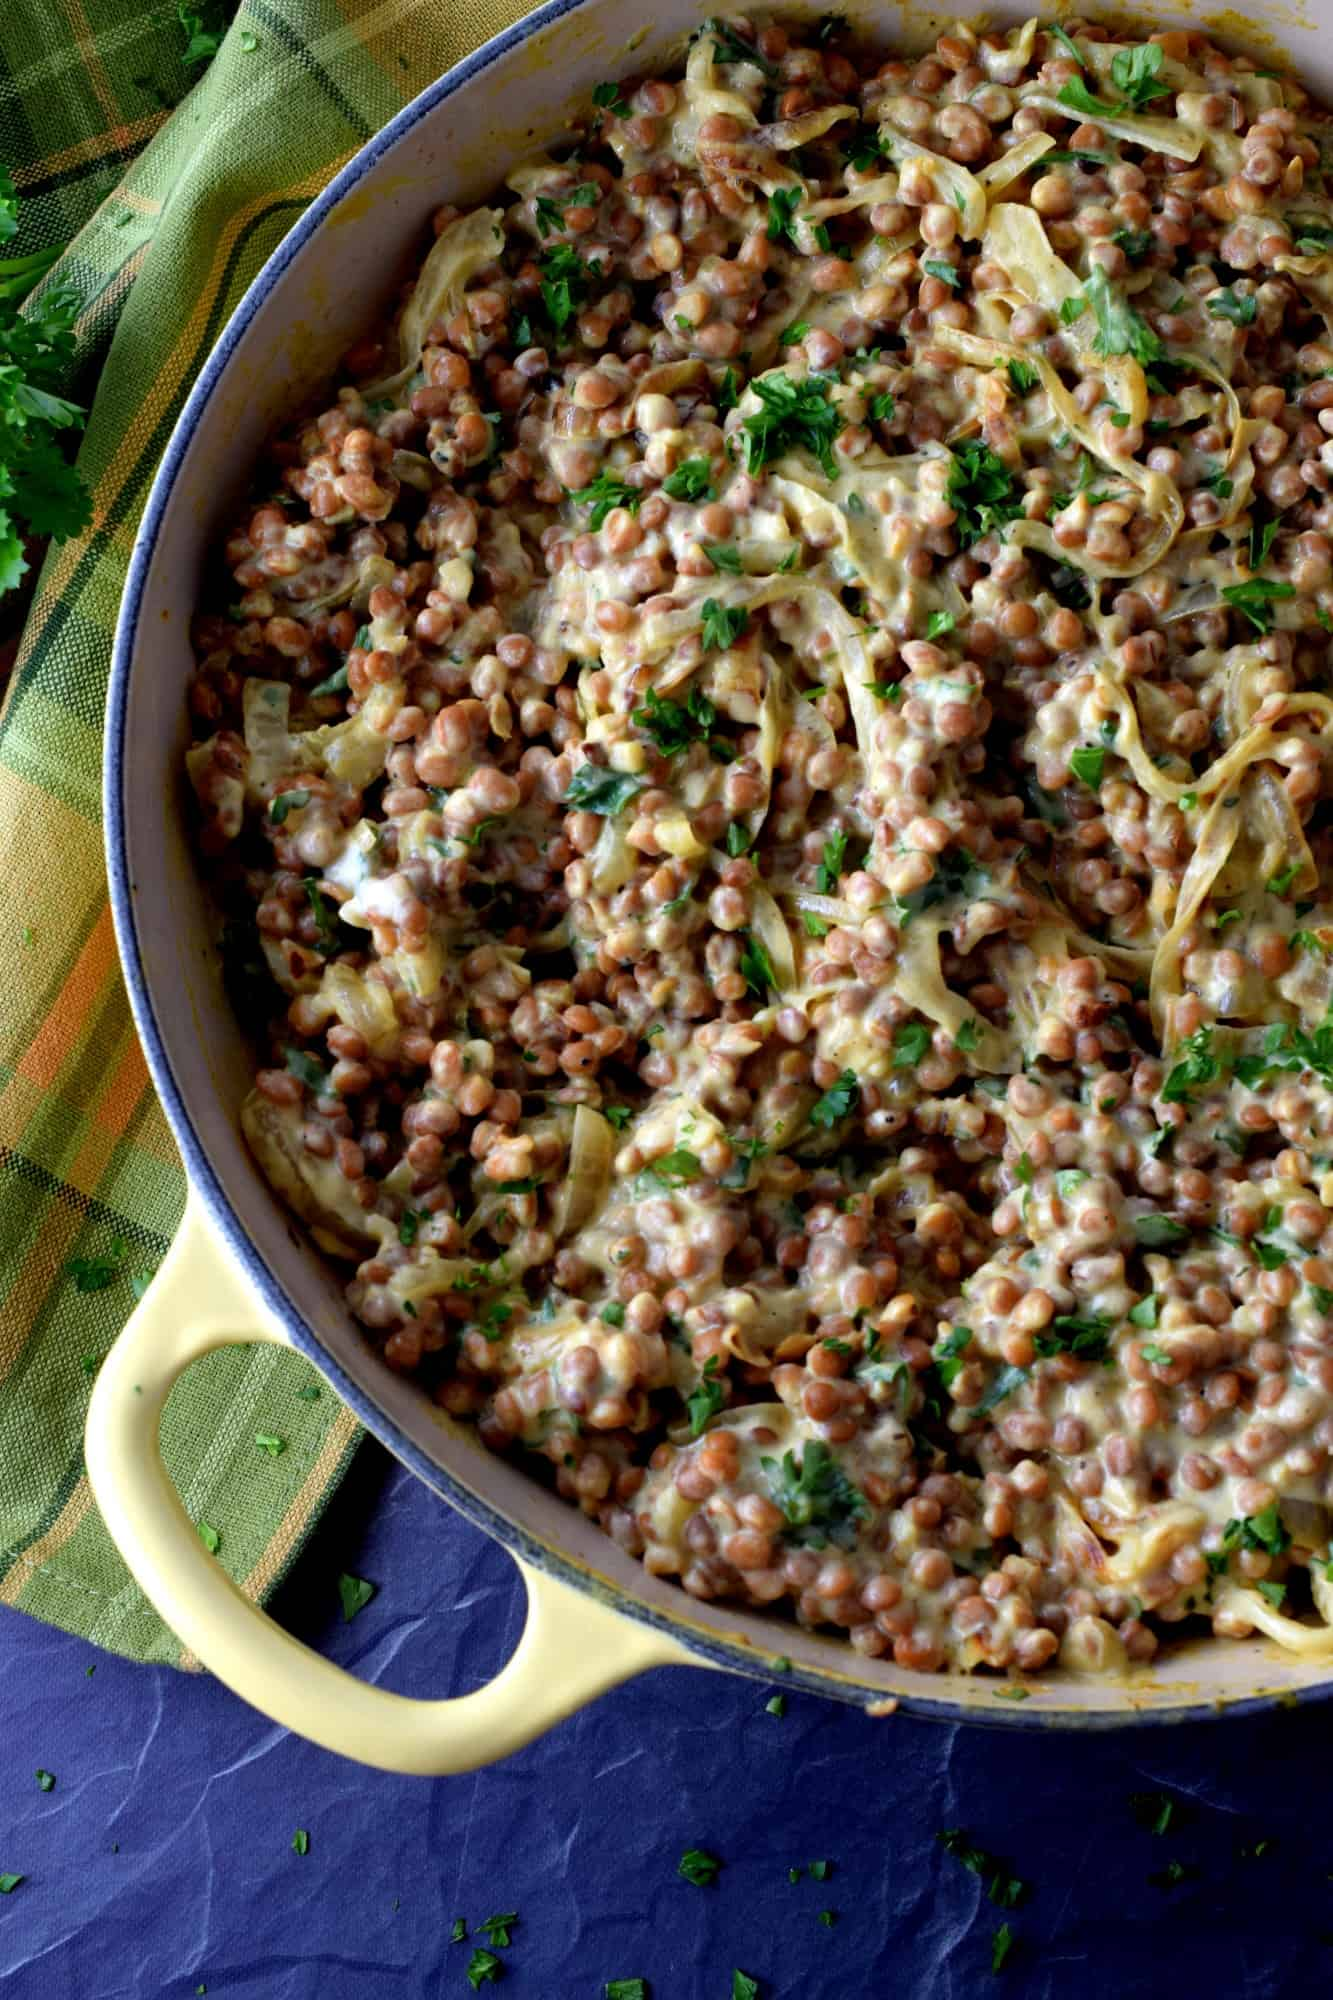 Dijon Spiced Creamy Lentils And Caramelized Onions